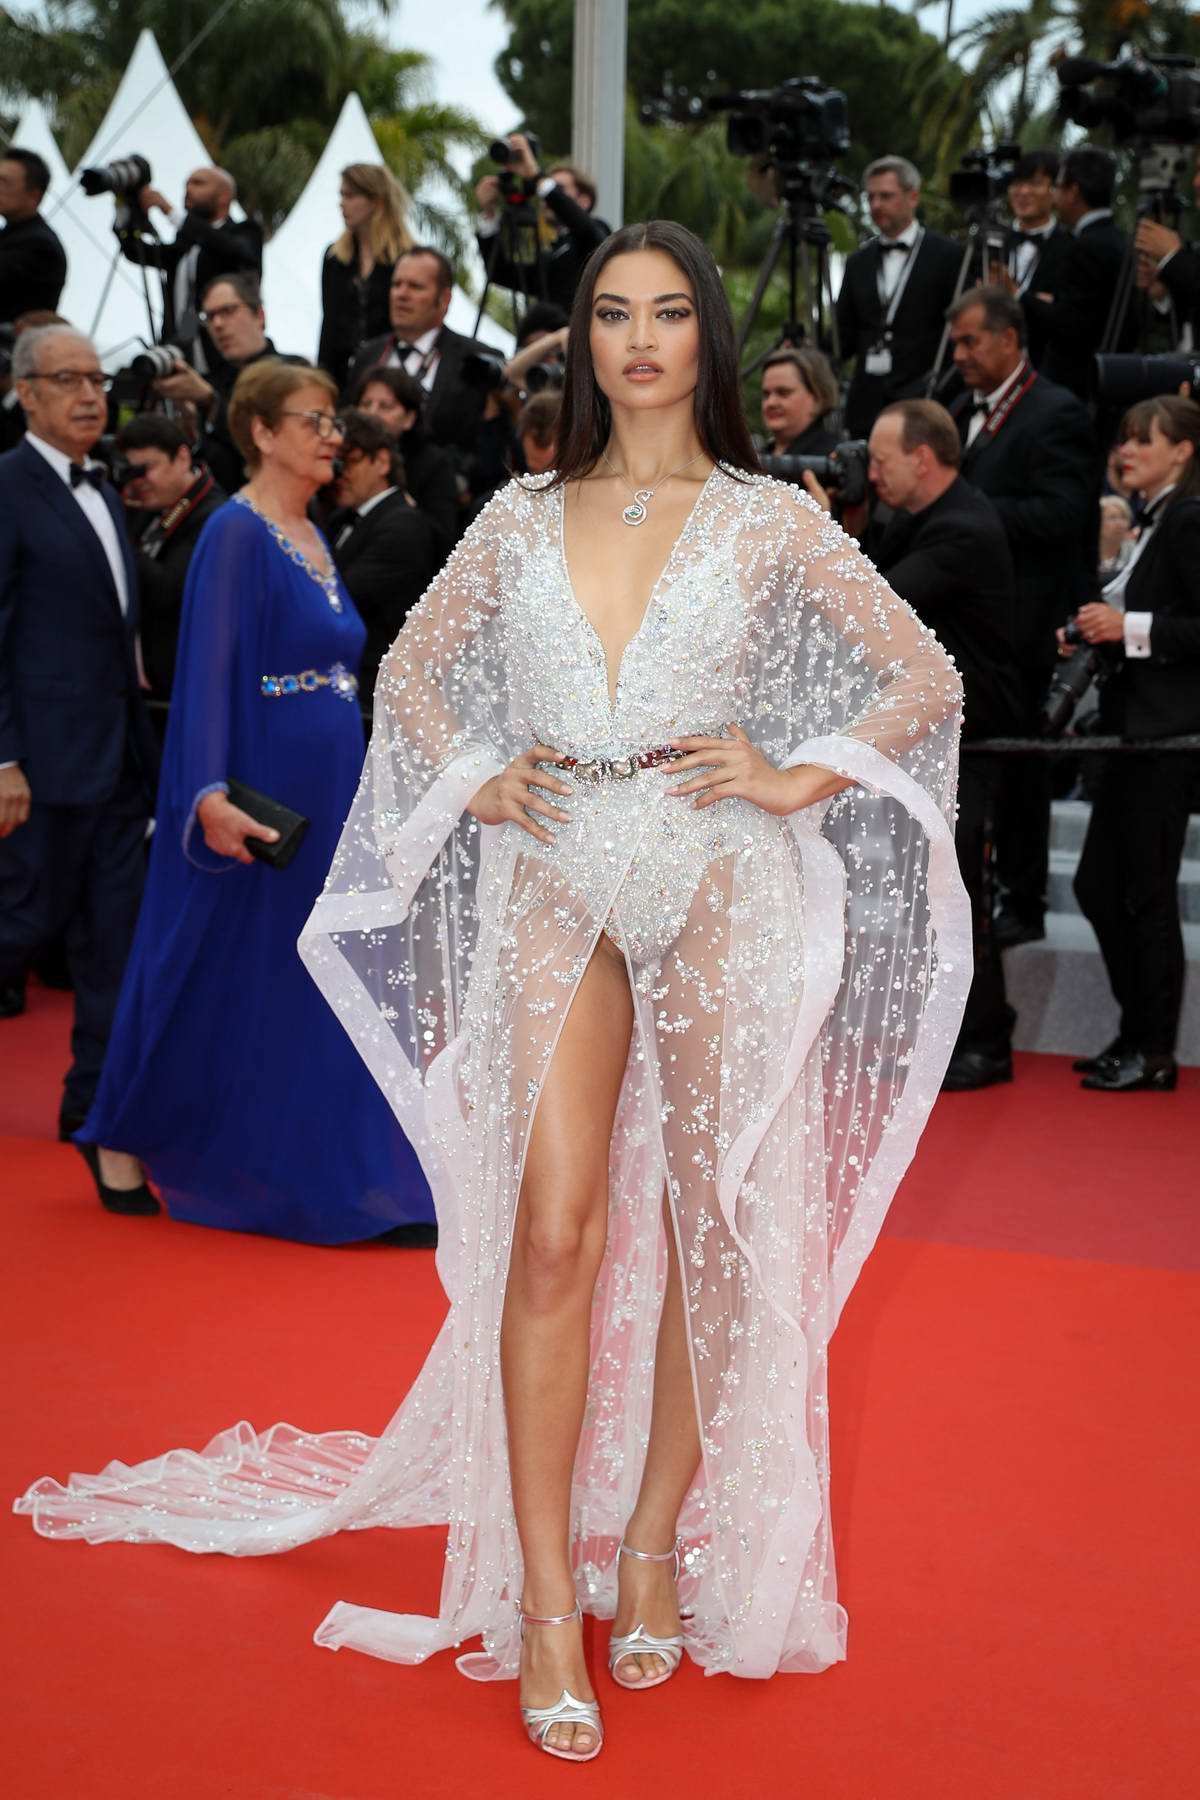 Shanina Shaik attends the screening of 'Sibyl' during the 72nd annual Cannes Film Festival In Cannes, France